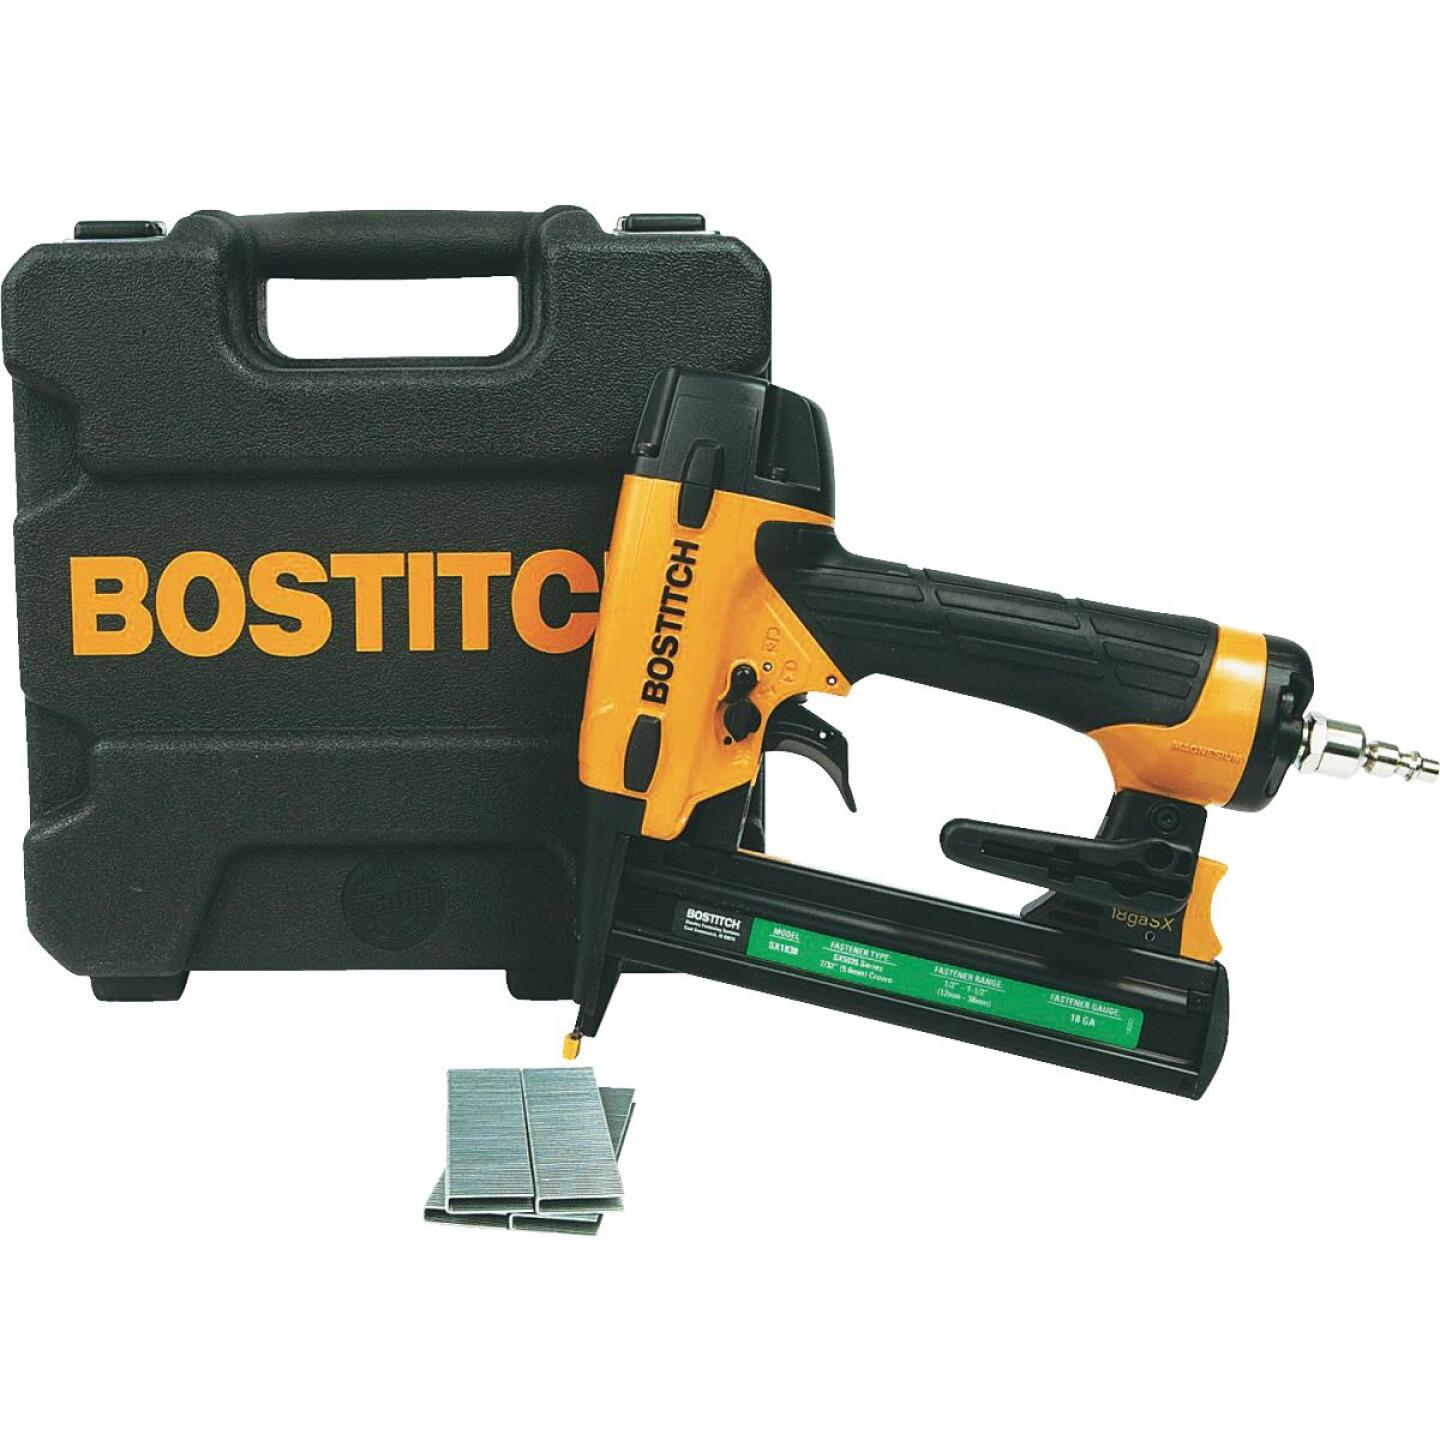 Bostitch 18-Gauge 7/32 In. Crown 1-1/2 In. Finish Stapler Kit Image 1